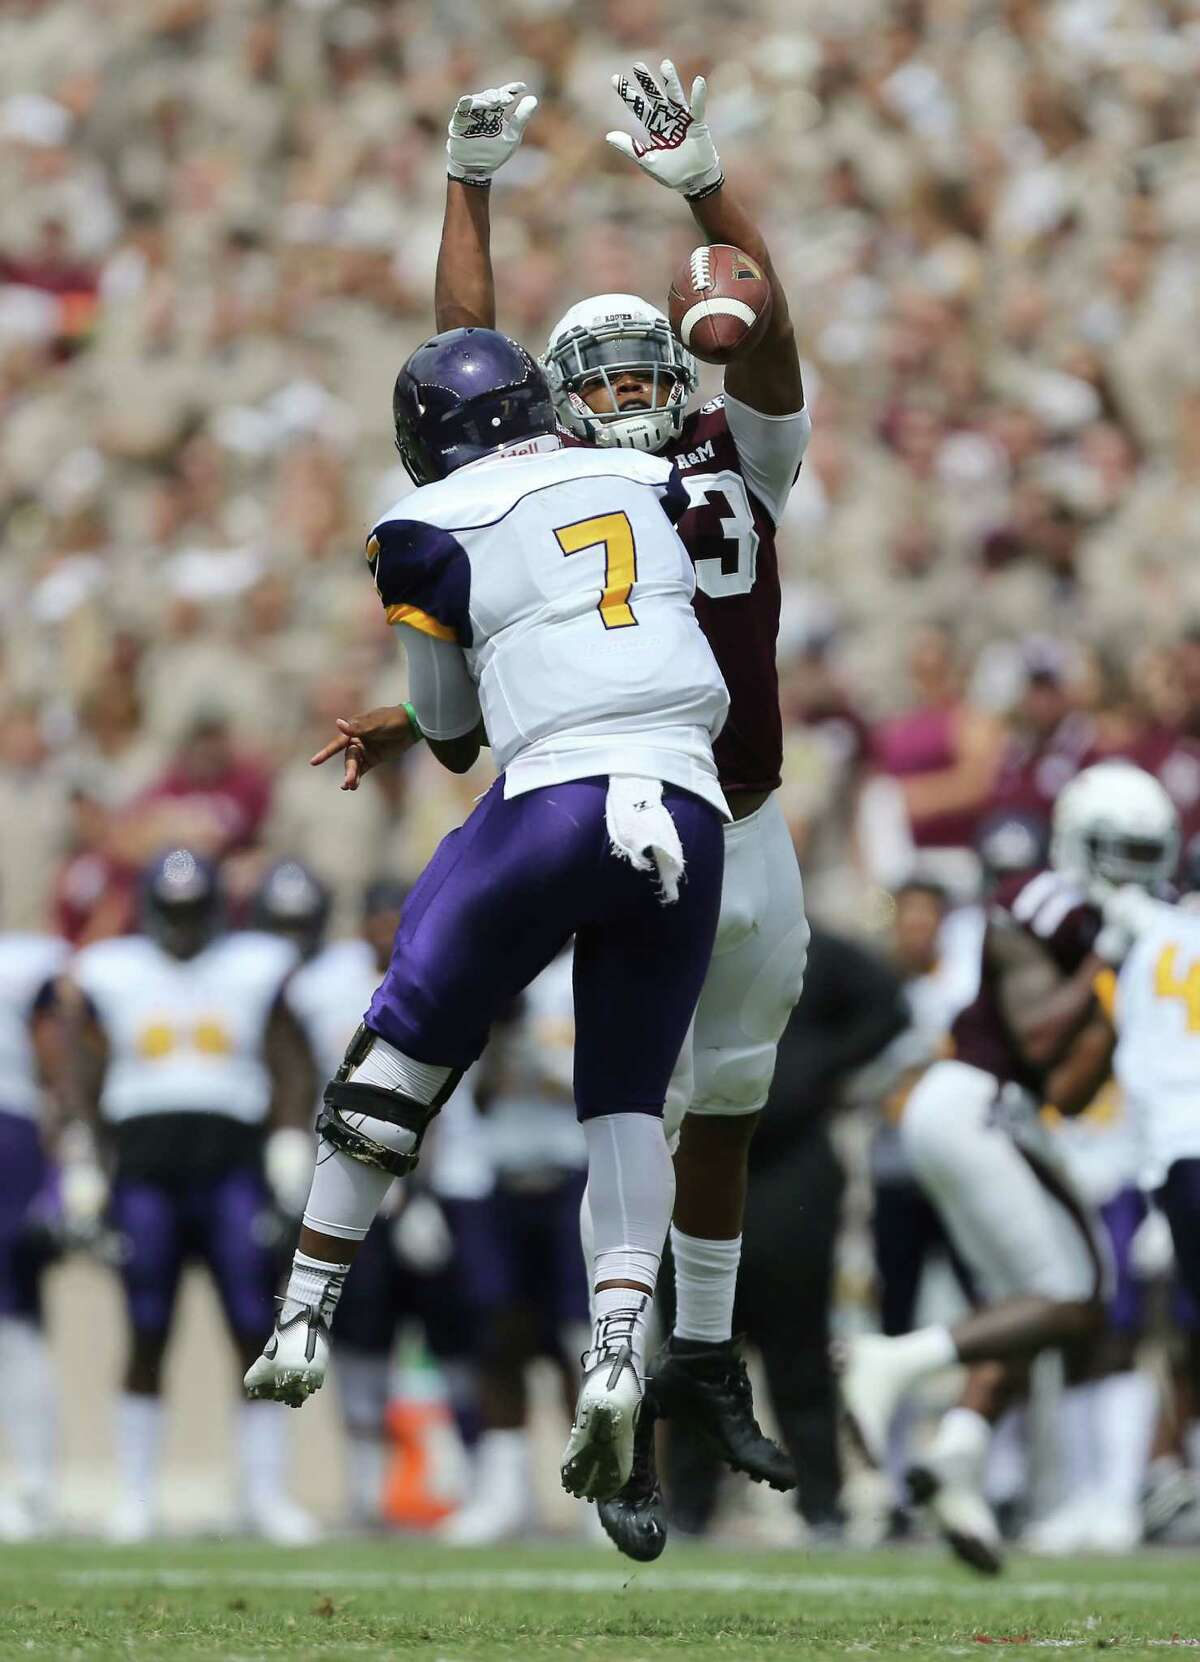 Texas A&M defensive lineman Reggie Chevis (13) knocks a pass attempt by Prairie View A&M quarterback Trey Green (7) during the second half of an NCAA college football game Saturday, Sept. 10, 2016, in College Station, Texas. (AP Photo/Sam Craft)